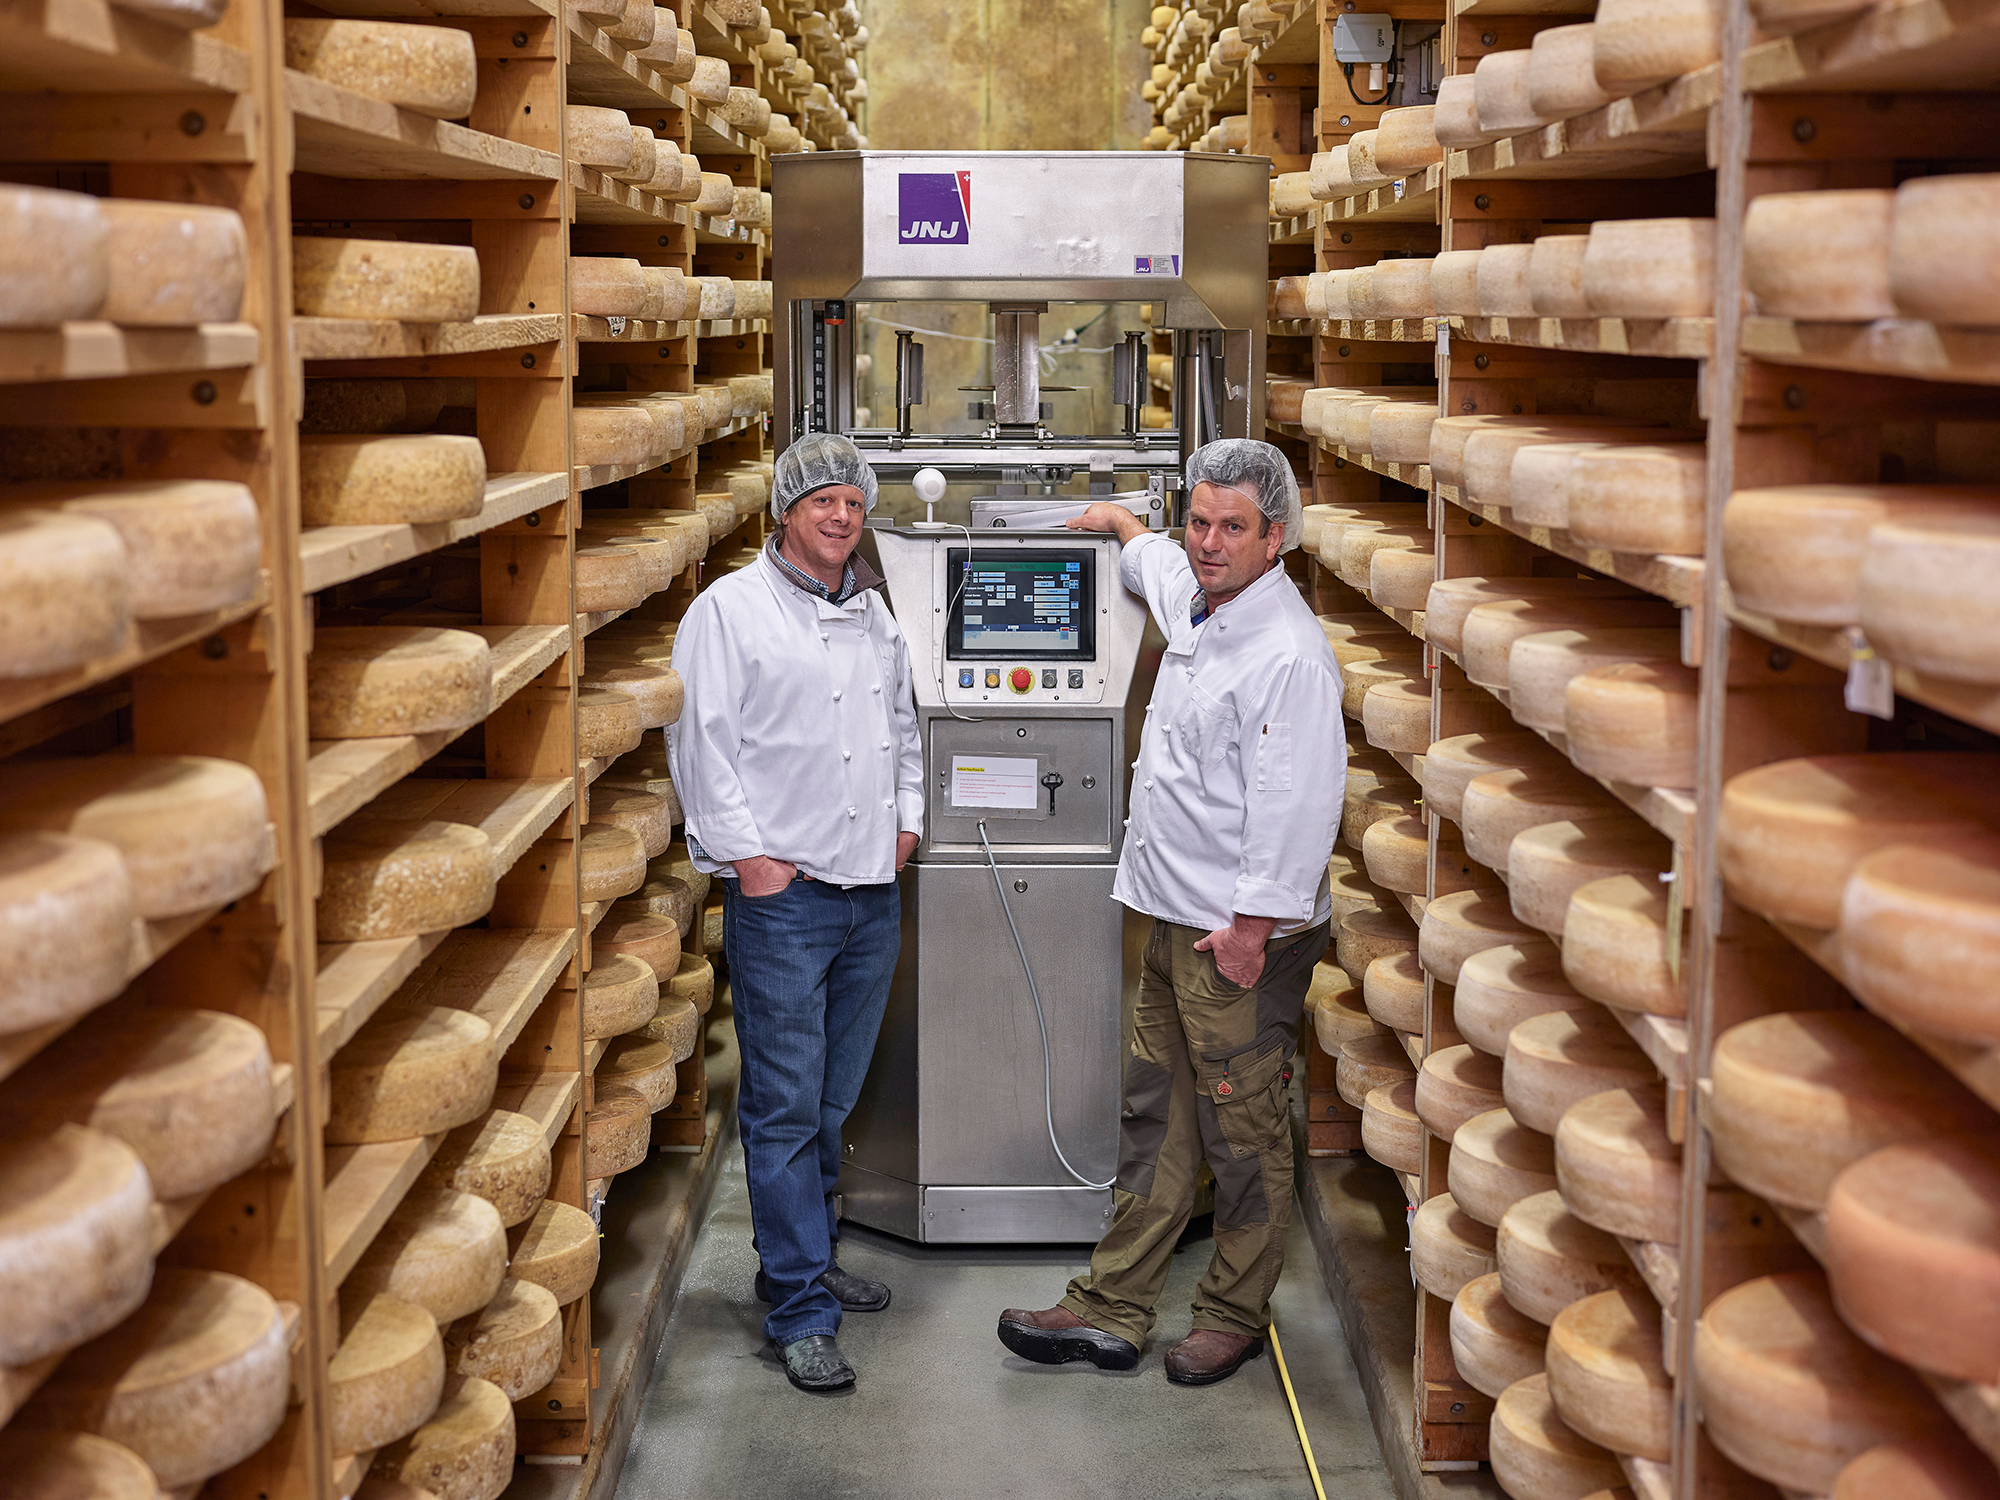 two men standing in a cheese factory